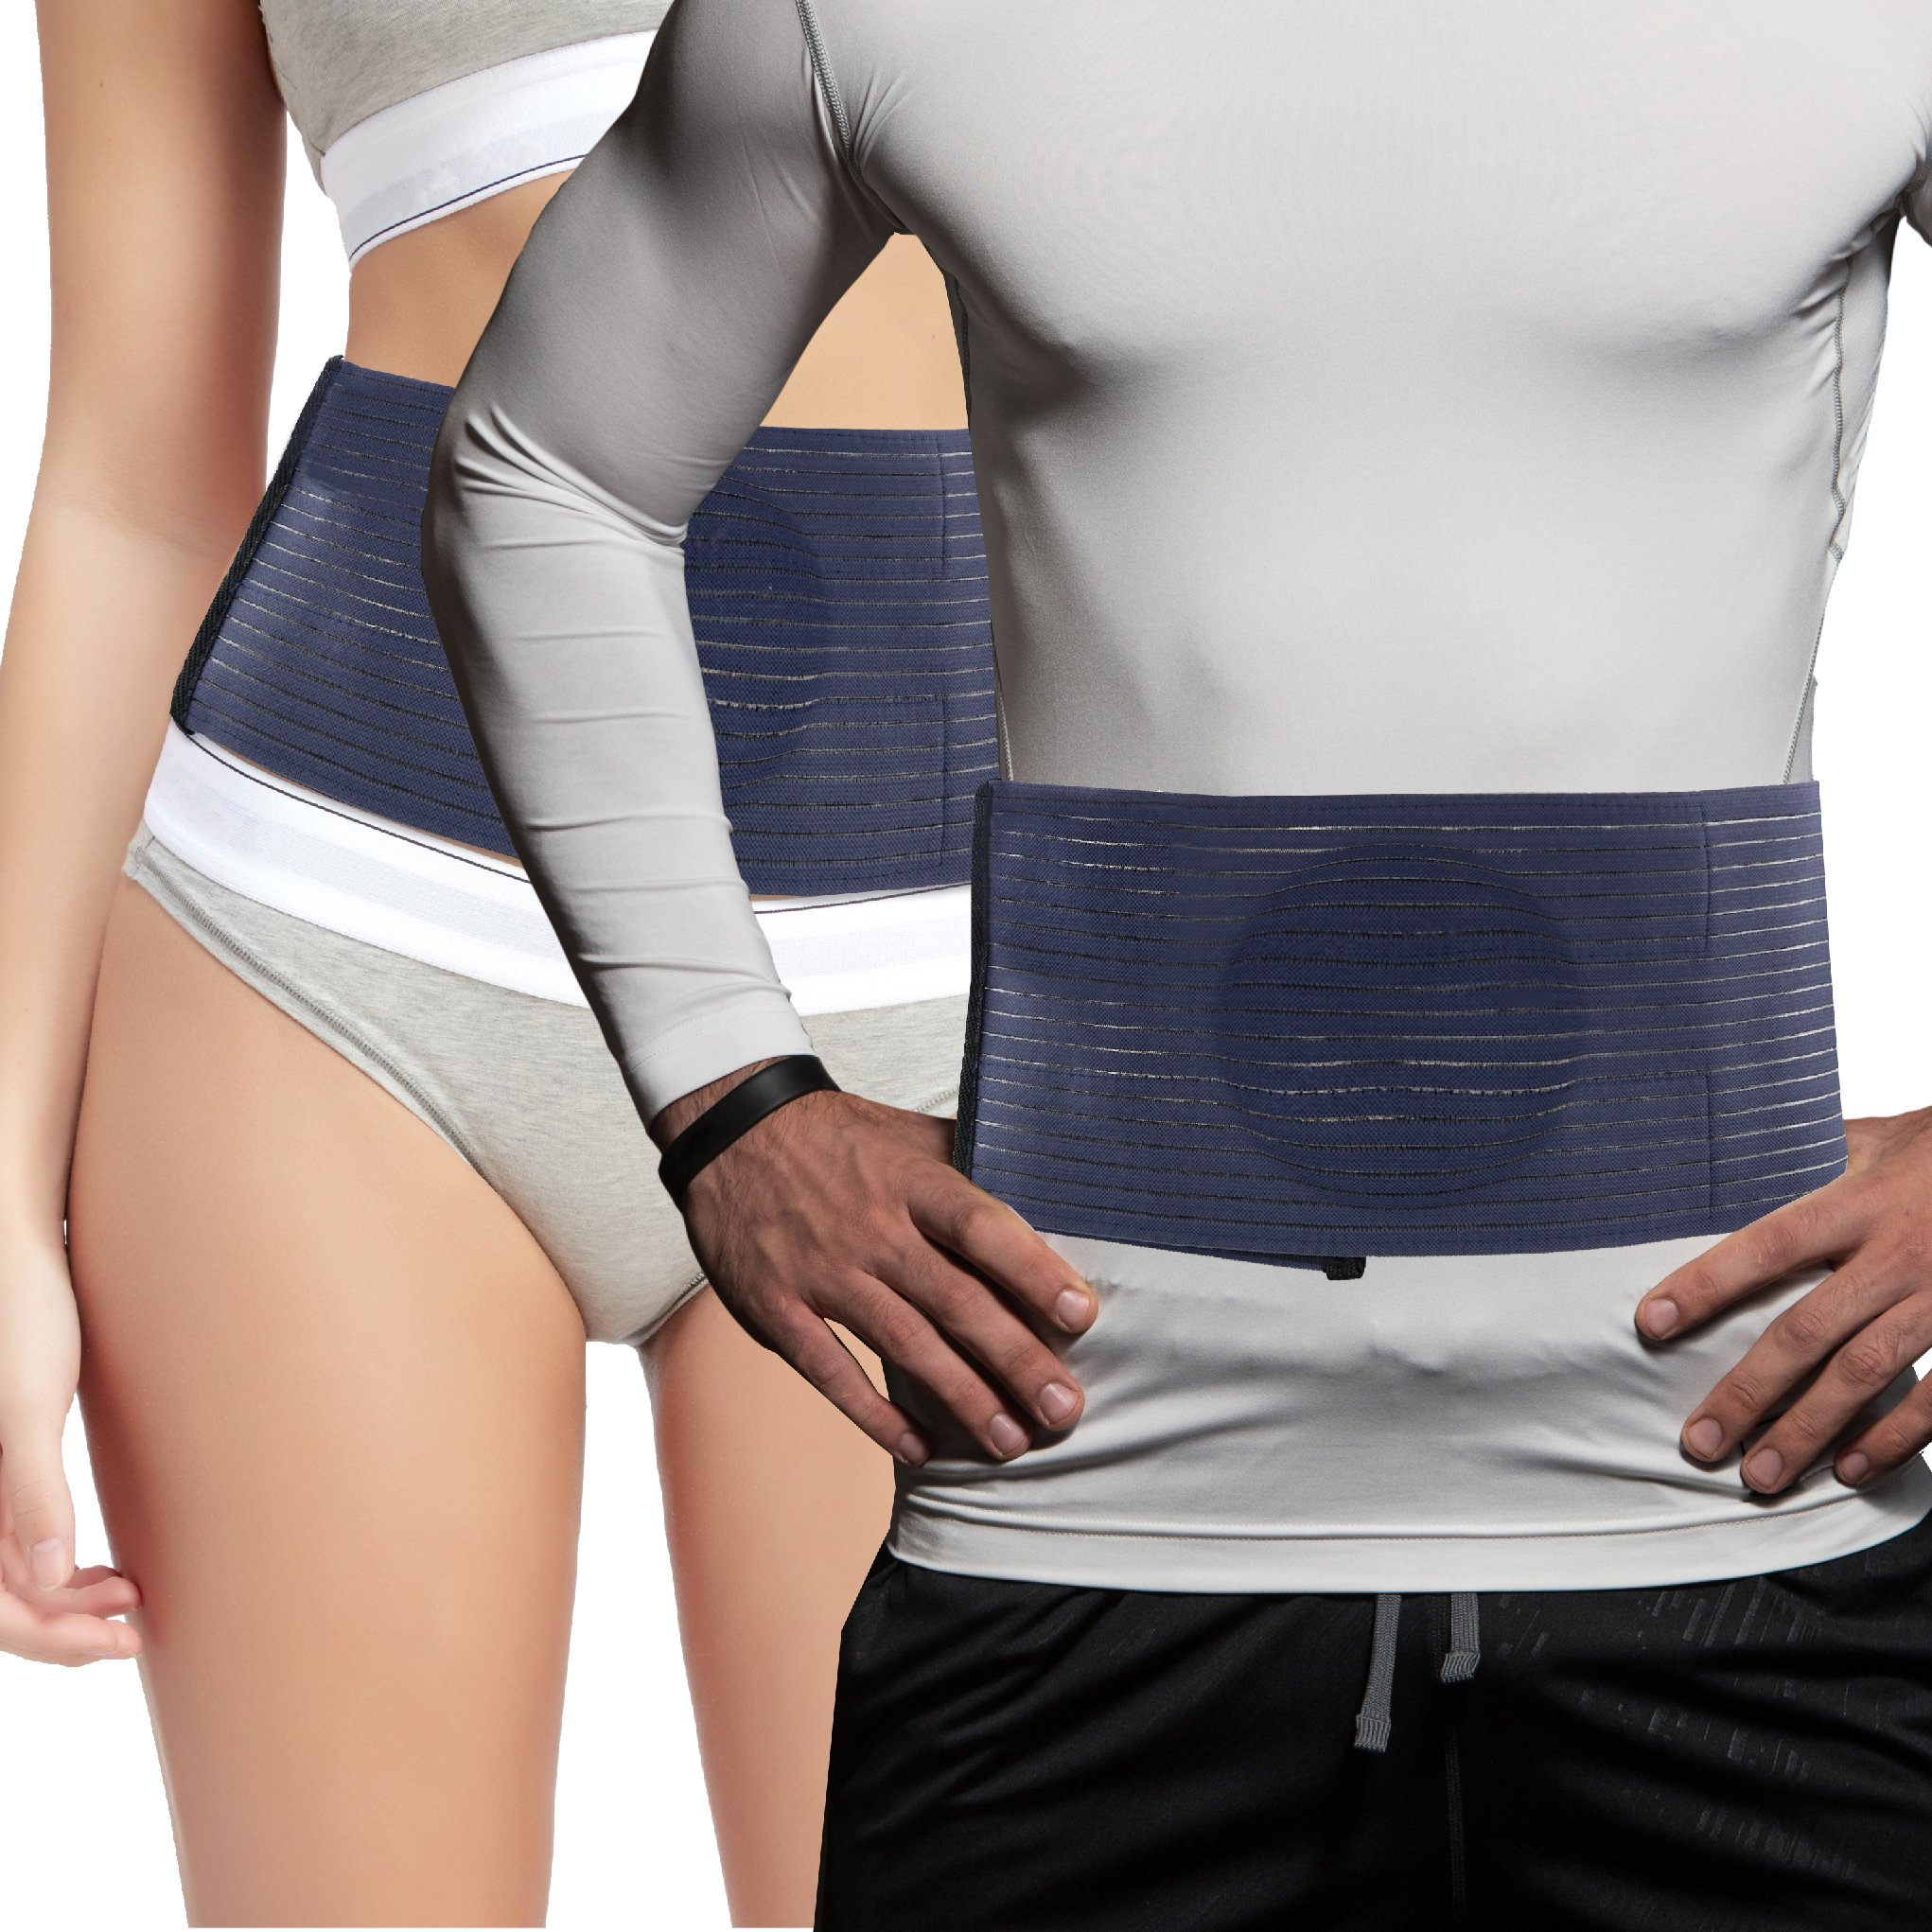 Everyday Medical Umbilical Hernia Belt - for Men and Women – Abdominal Hernia Binder for Belly Button Navel Hernia Support, Helps Relieve Pain - for Incisional, Epigastric, Ventral, Inguinal Hernia